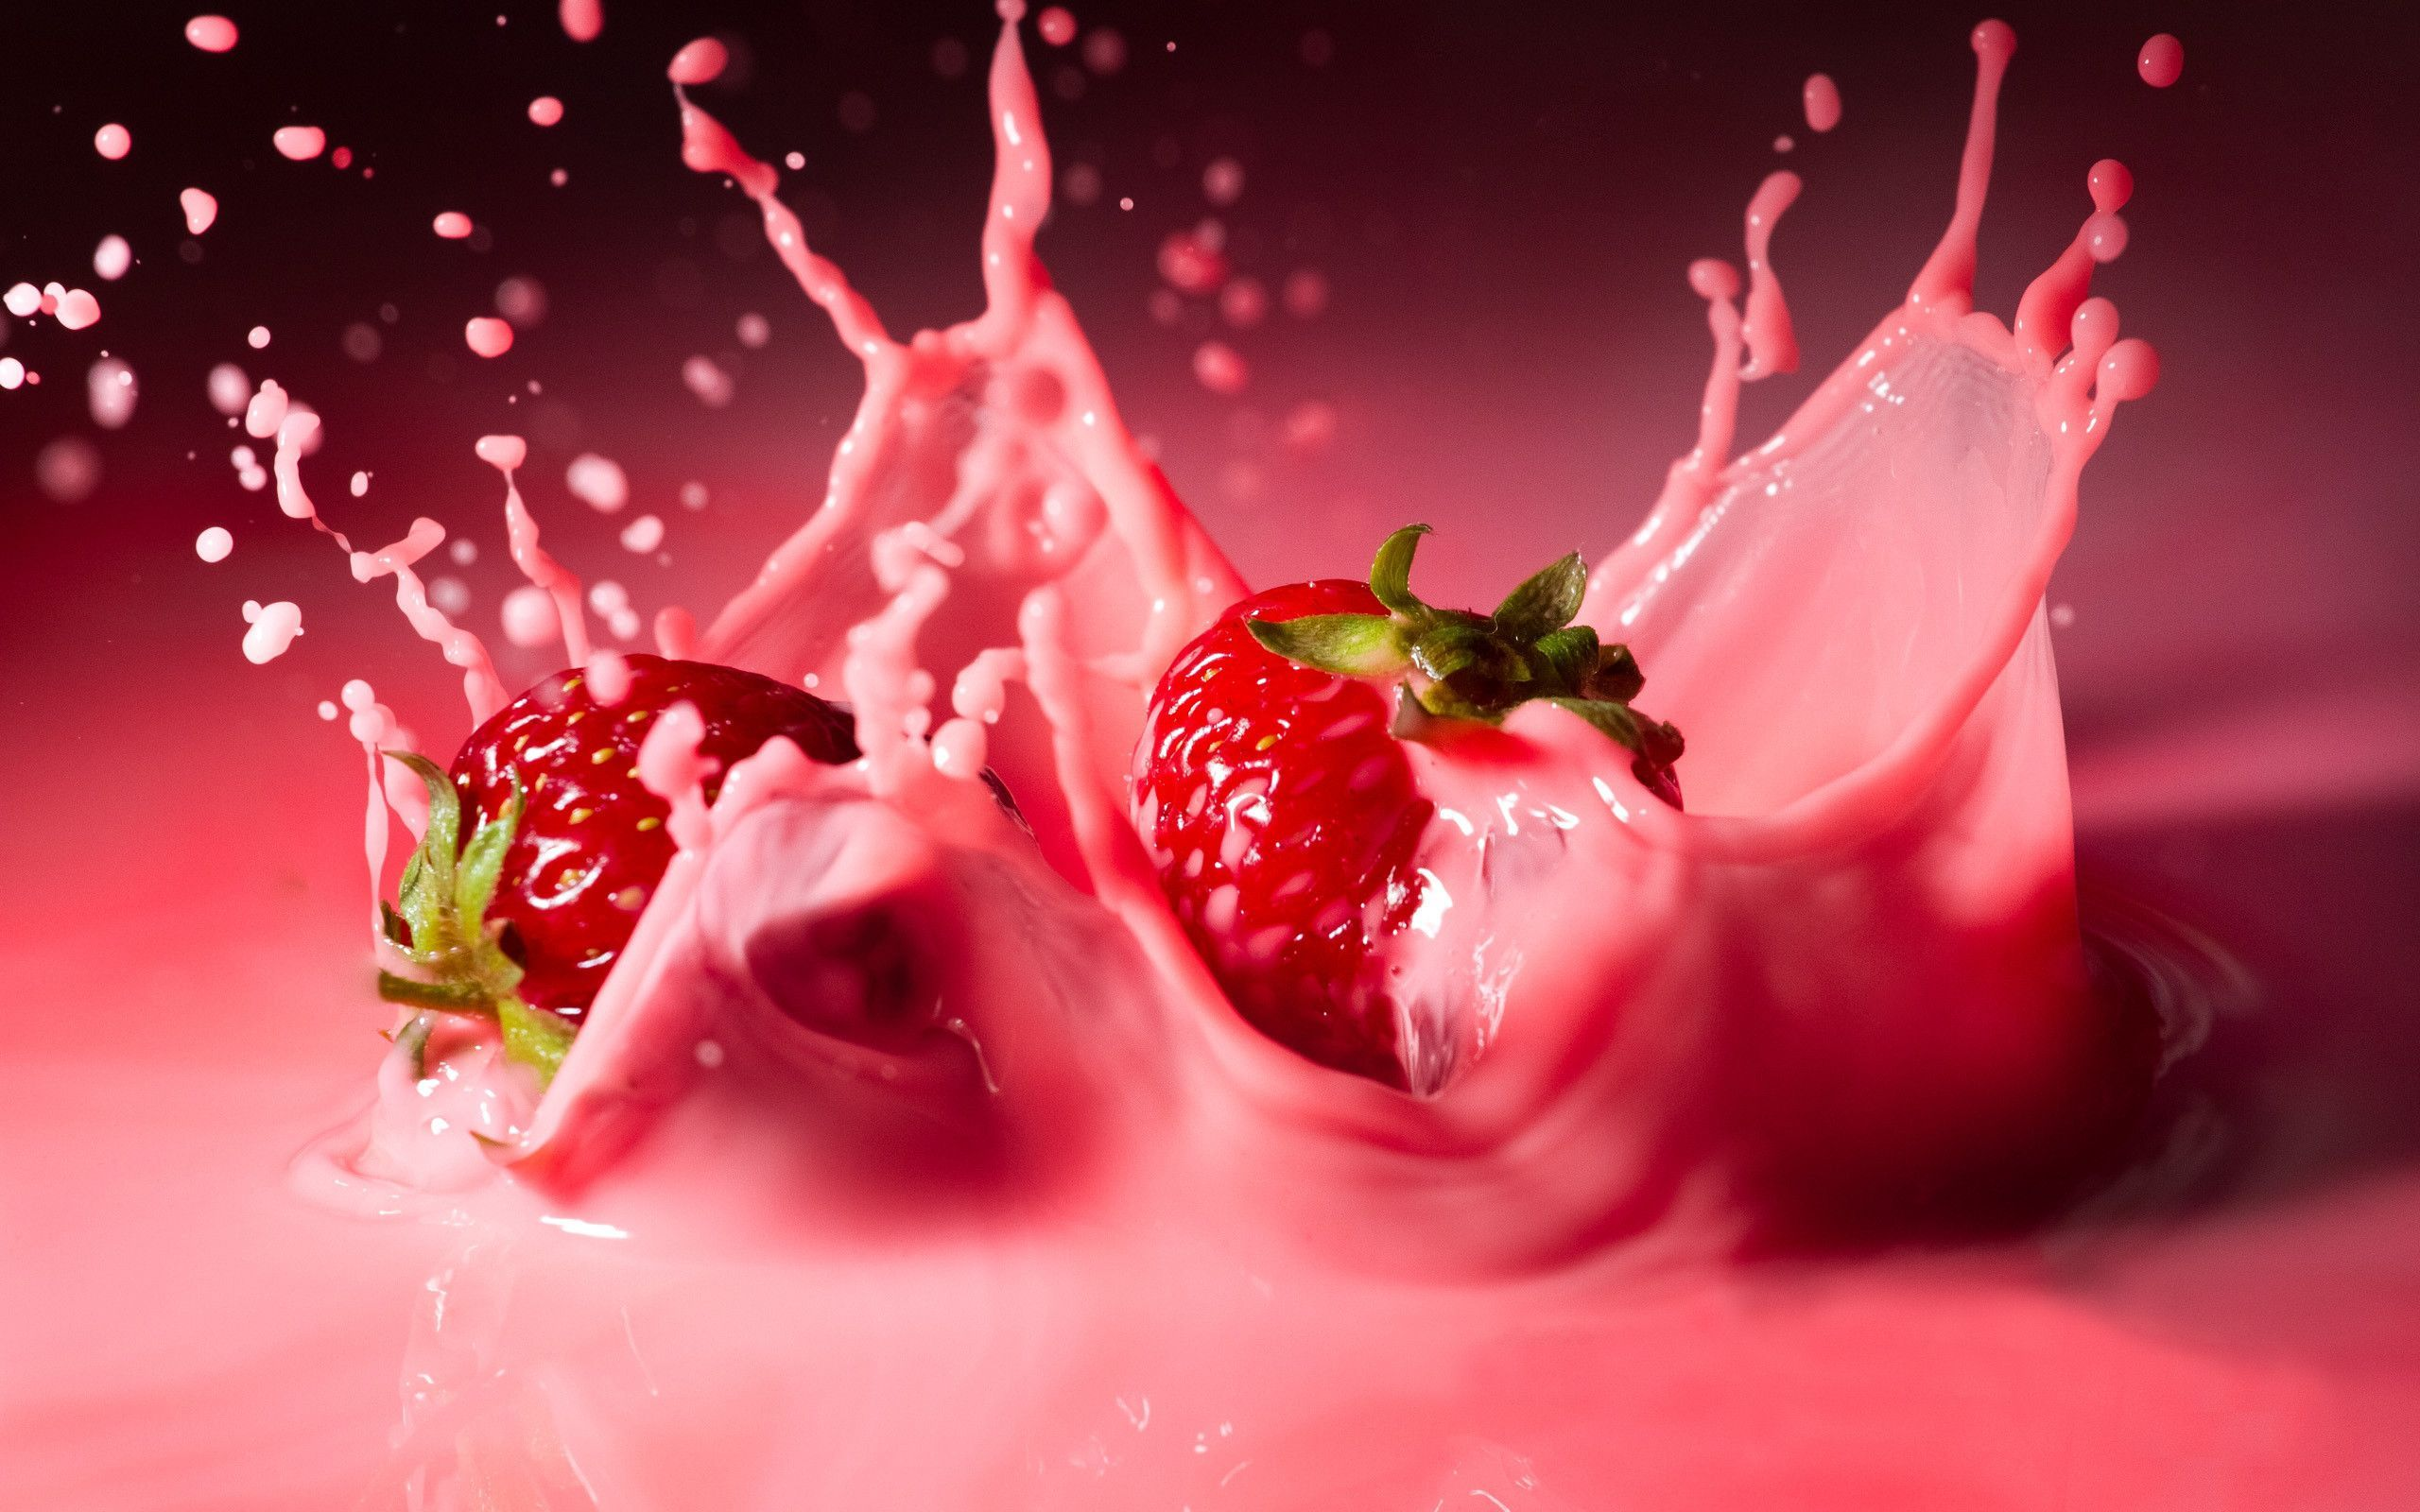 Pink Strawberry Splash Wallpaper